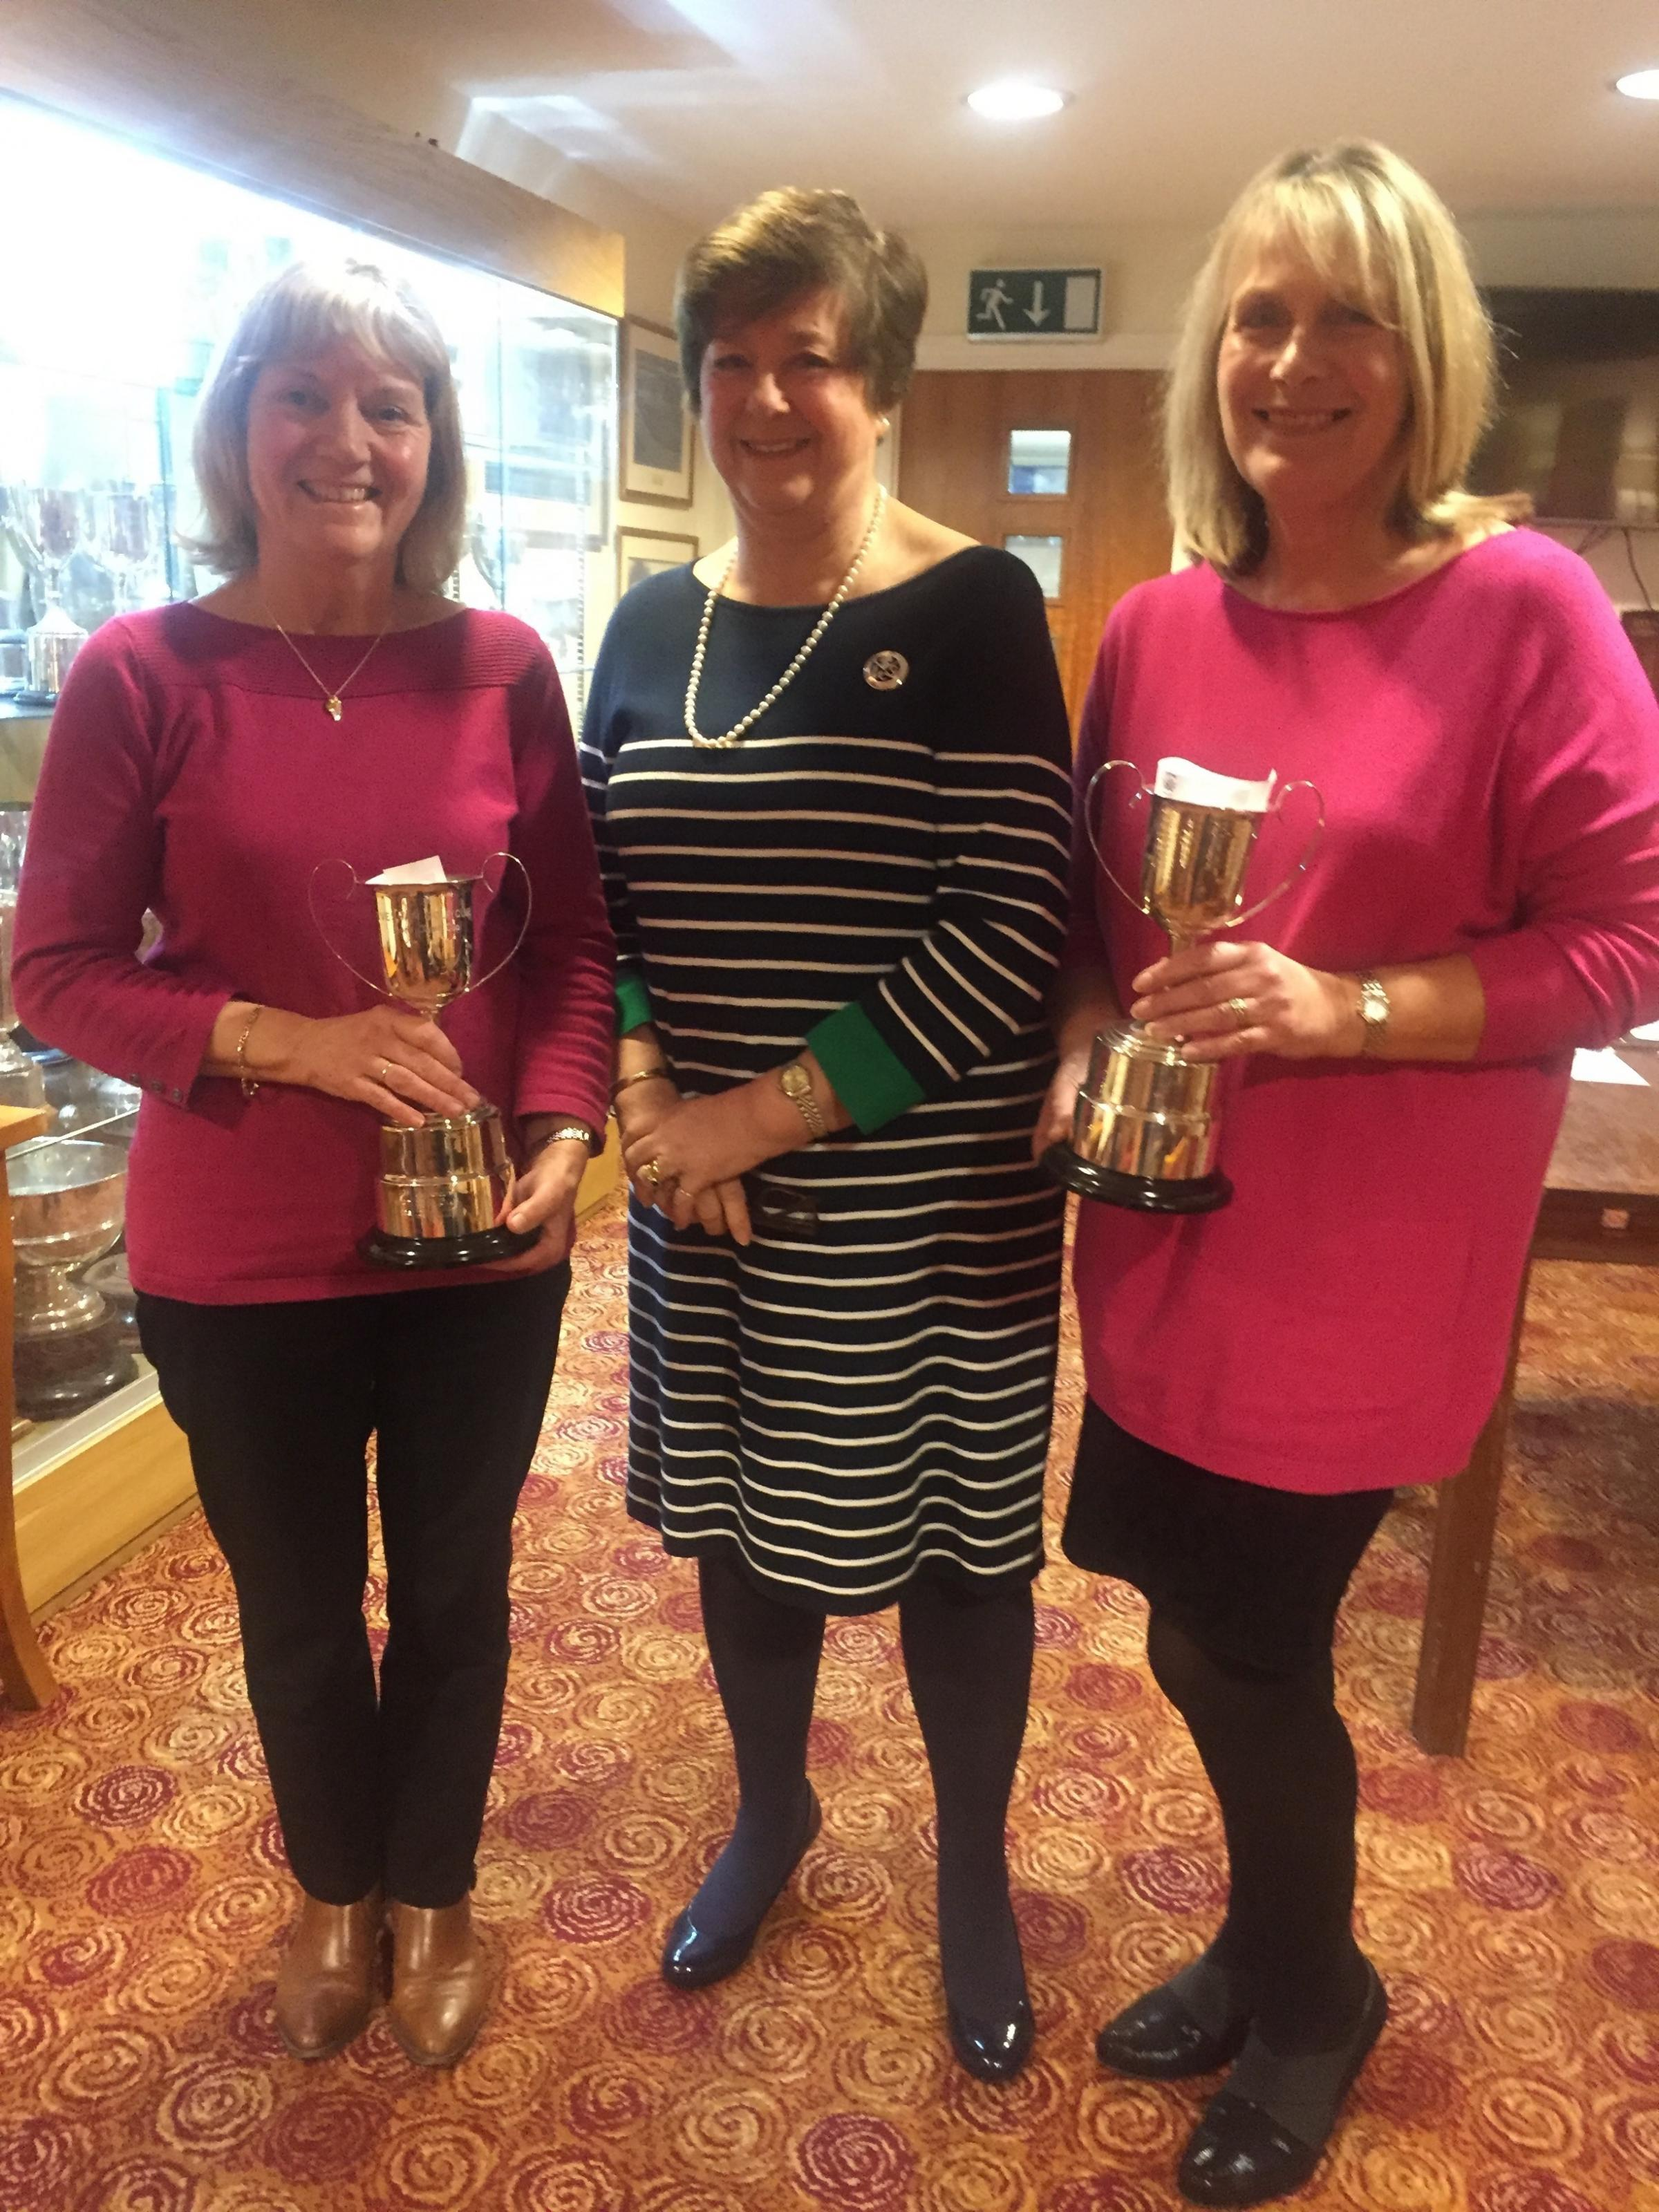 Sally Rogers and Lesley Curnock receive the Nora Olsen Cups from Angela Budden